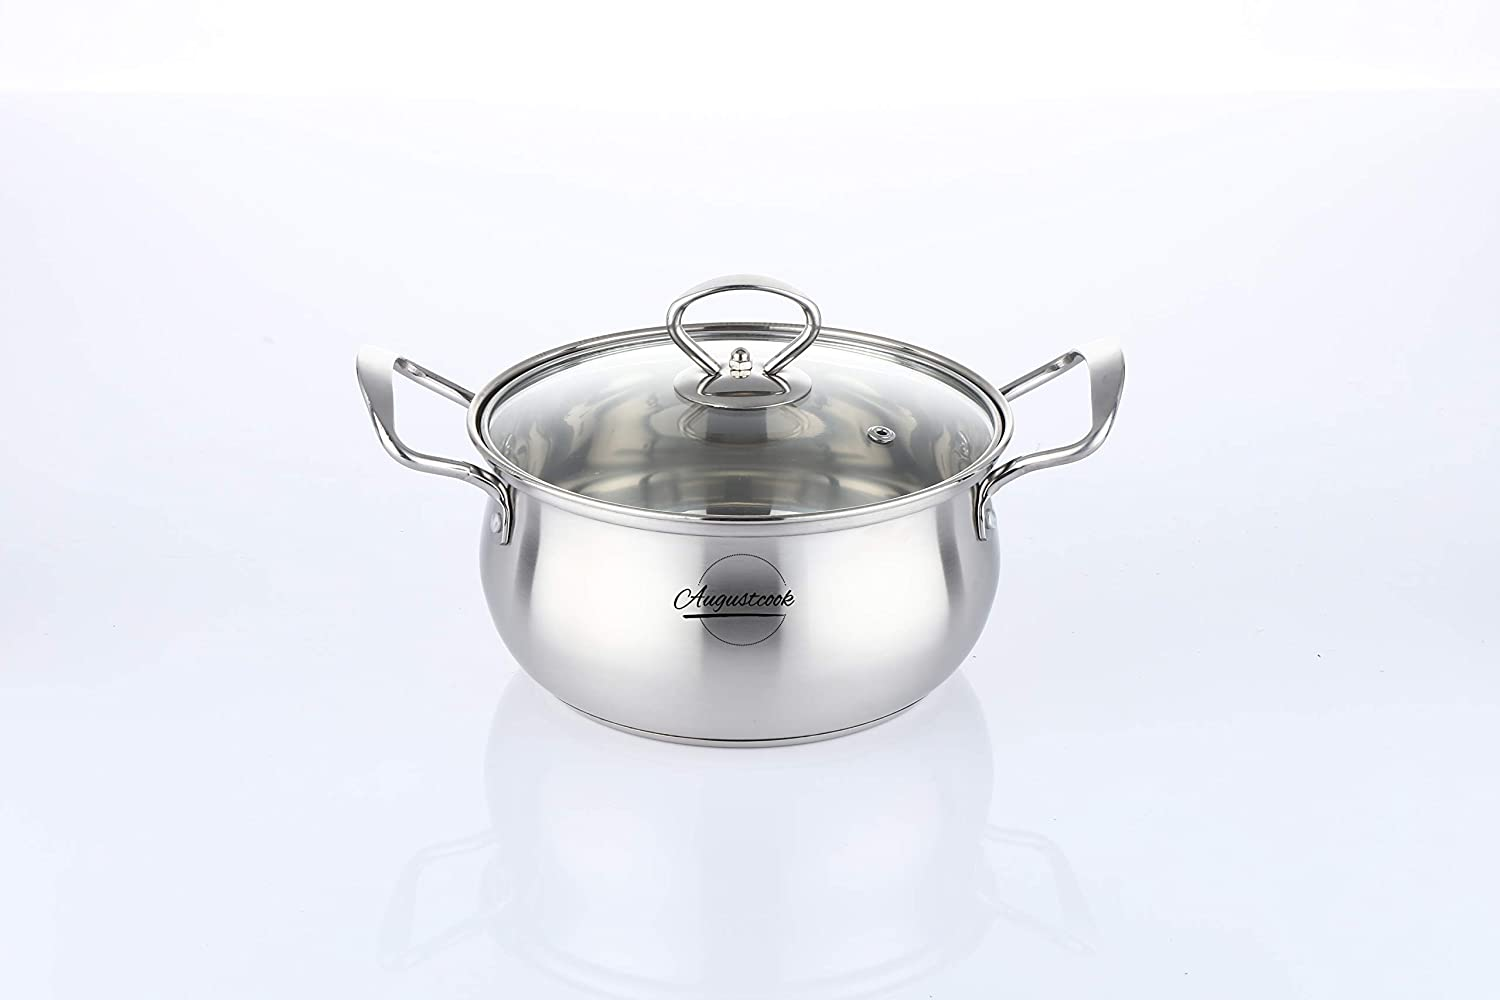 Augustcook Saucepan with Lid,Sauce Pan Pot,Stainless Steel Milk Pan,Nonstick Safe Soup Pot,Gourmet Covered Straining Pot with Glass Lid Cookware 16 cm,1.2L Silver